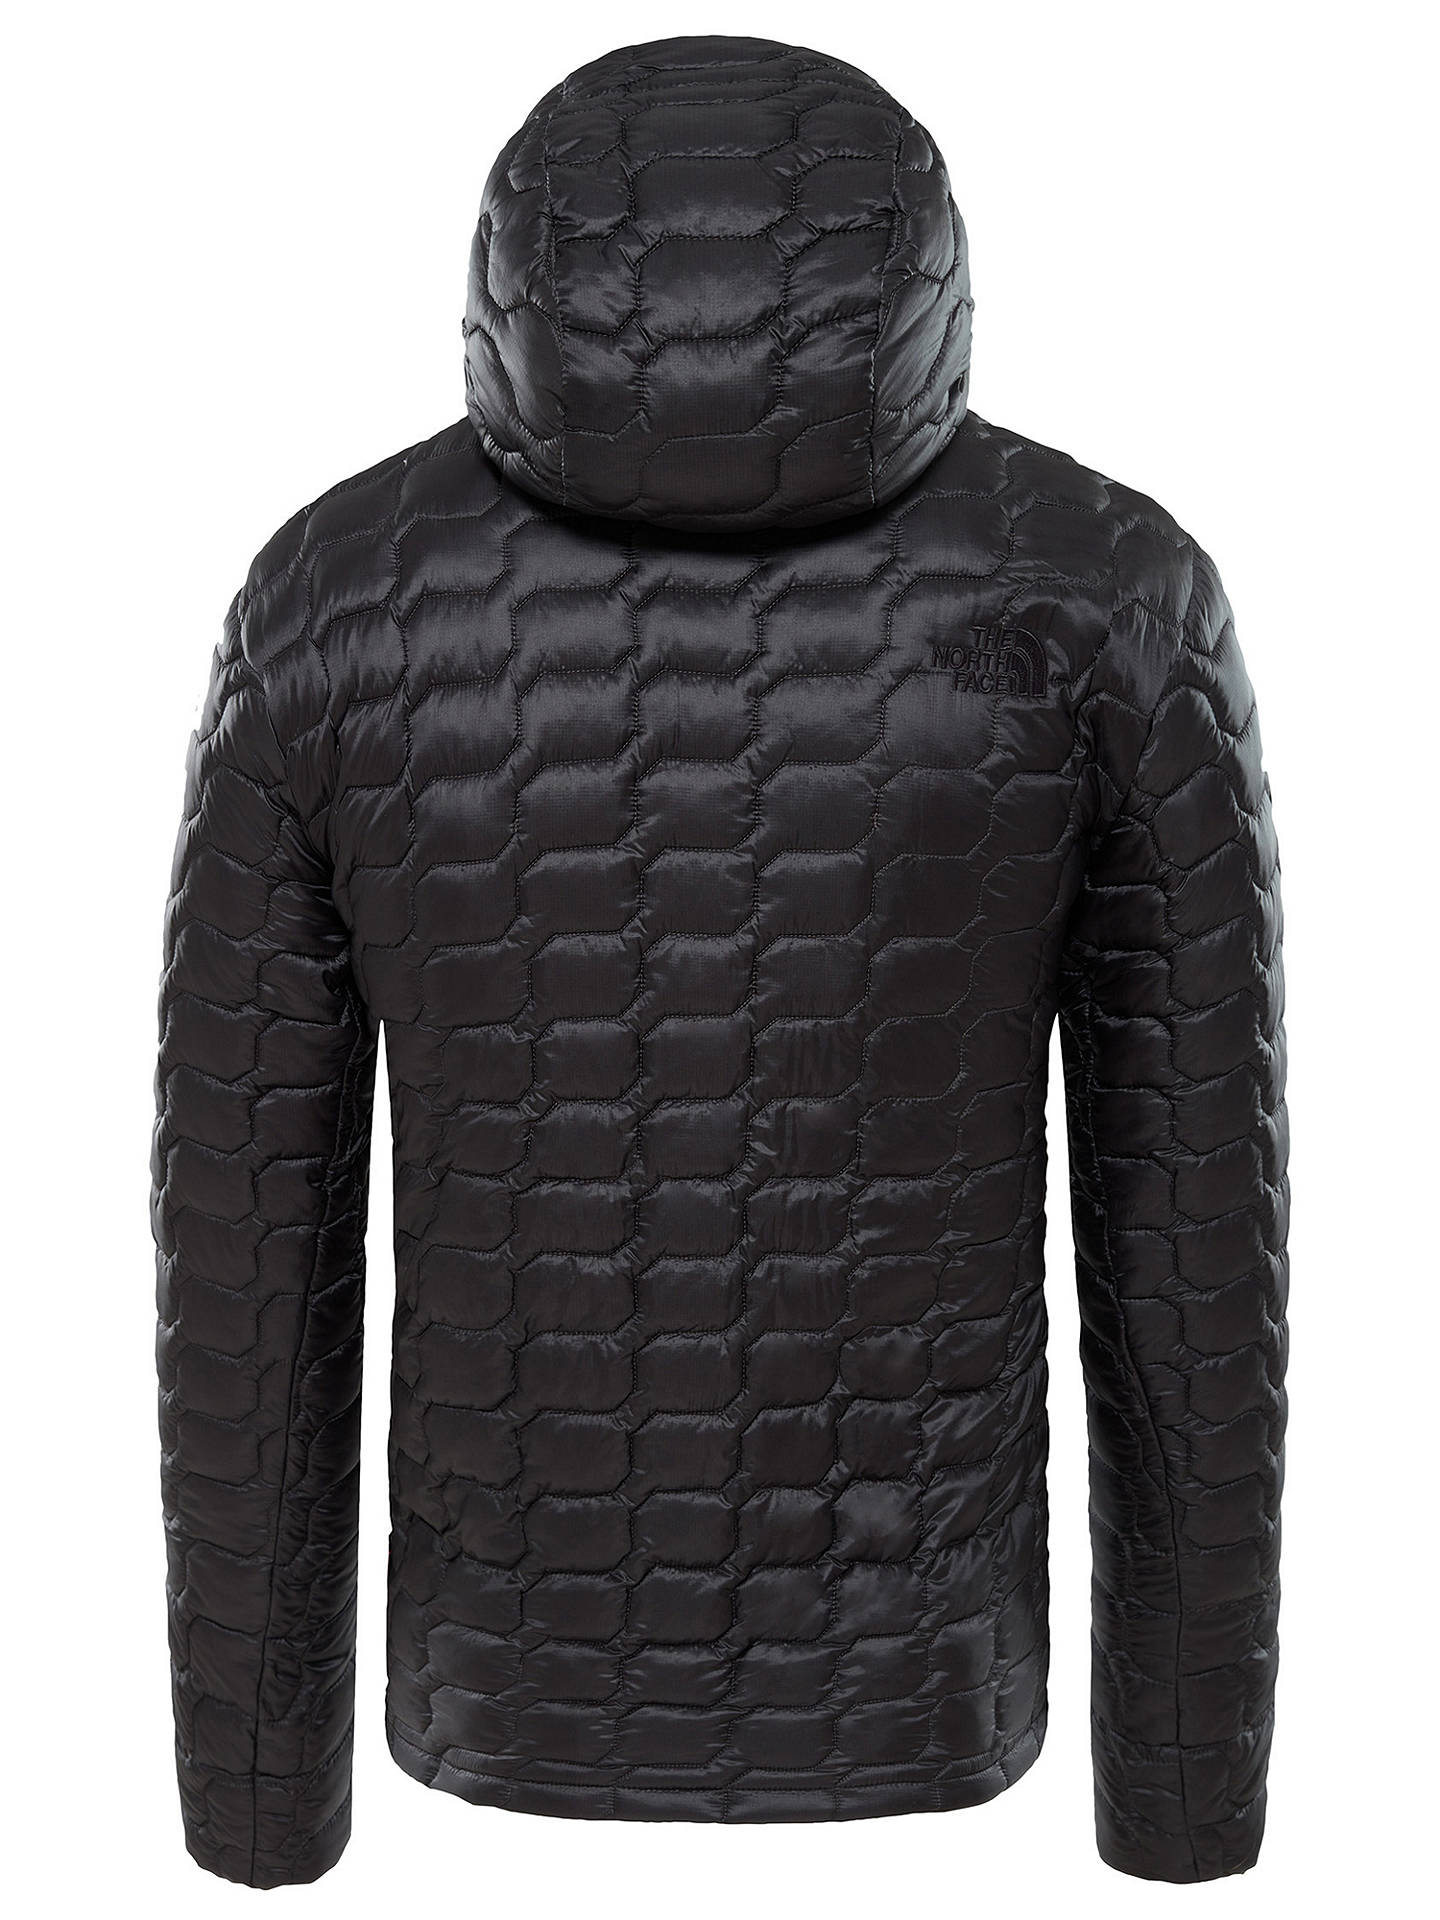 BuyThe North Face Thermoball Full-Zip Men's Insulated Jacket, Asphalt Grey, S Online at johnlewis.com